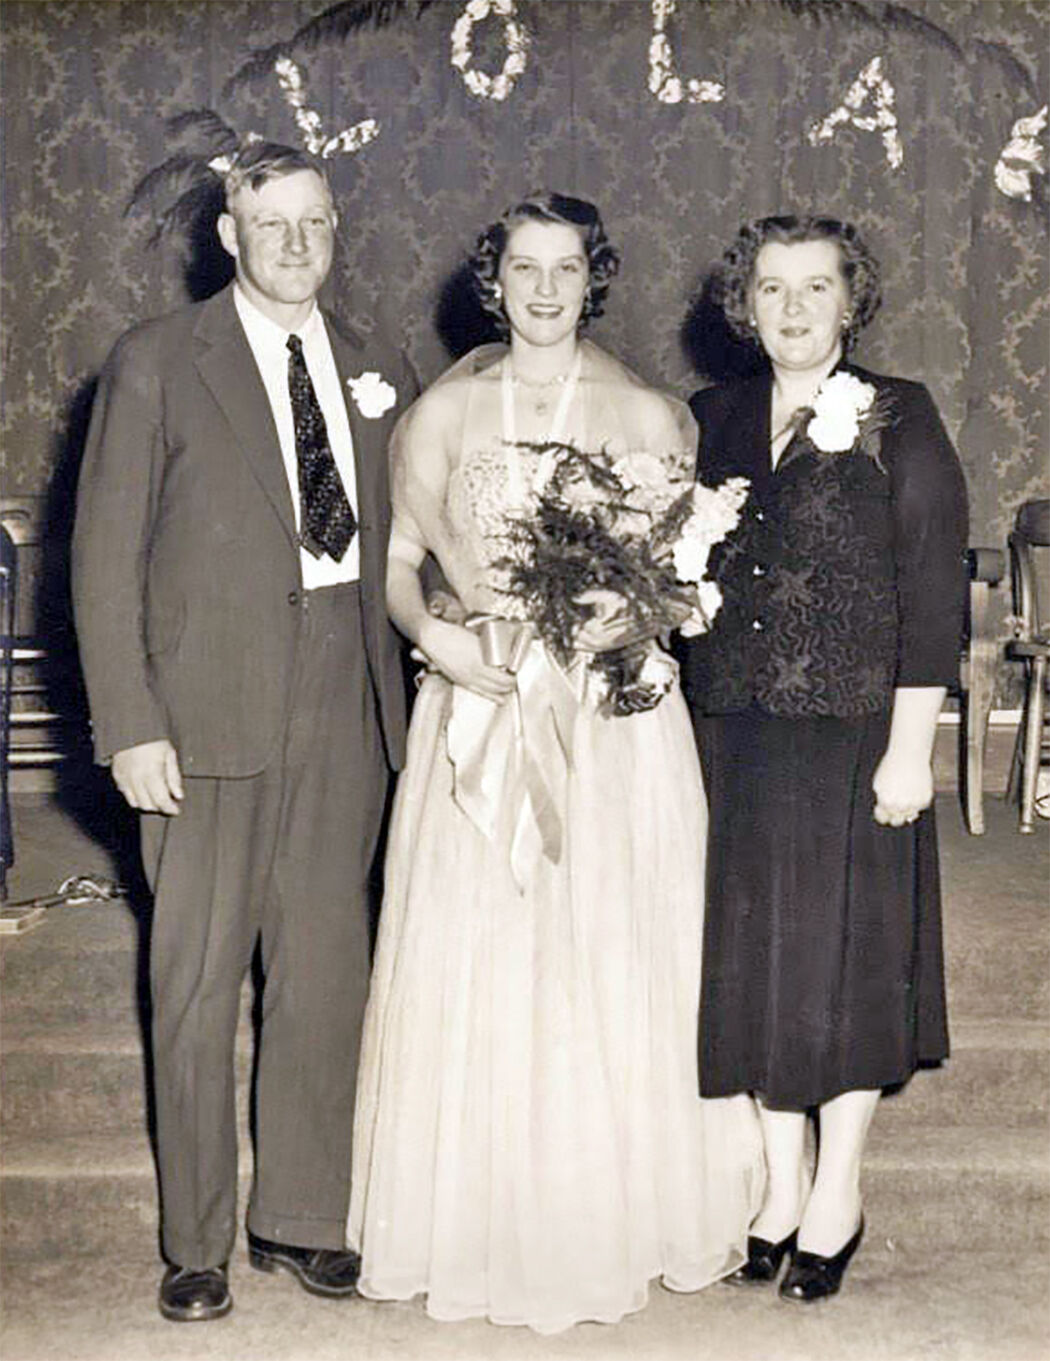 Otto and Margaret Hill with their daughter Lola